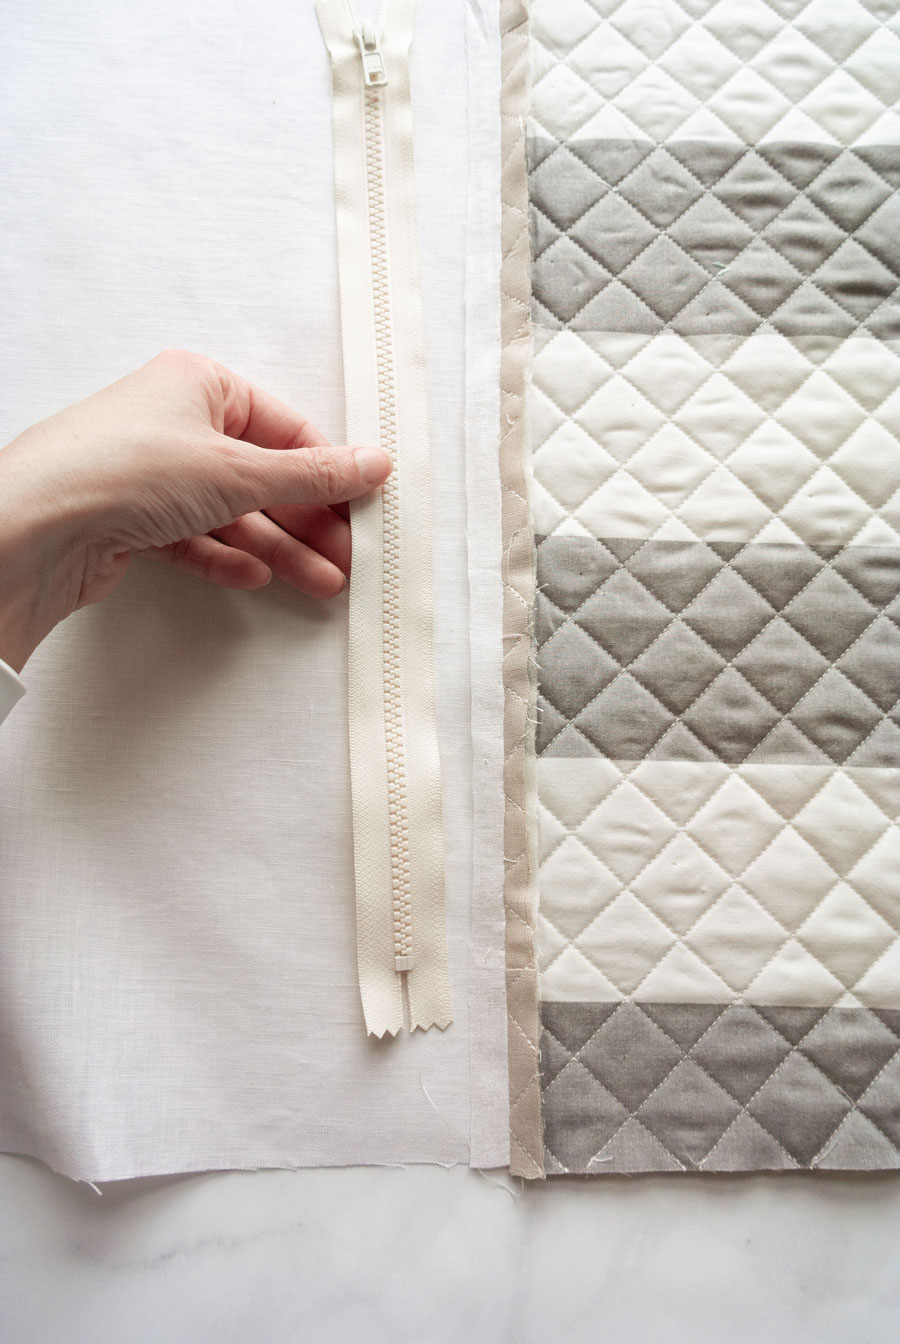 Elegant Quilted Pillow DIY! Sew a quilted zipper pillow with this step by step tutorial. I'll walk you through how to baste and quilt your pillow top, sew a zipper, and finish the pillow beautifully!